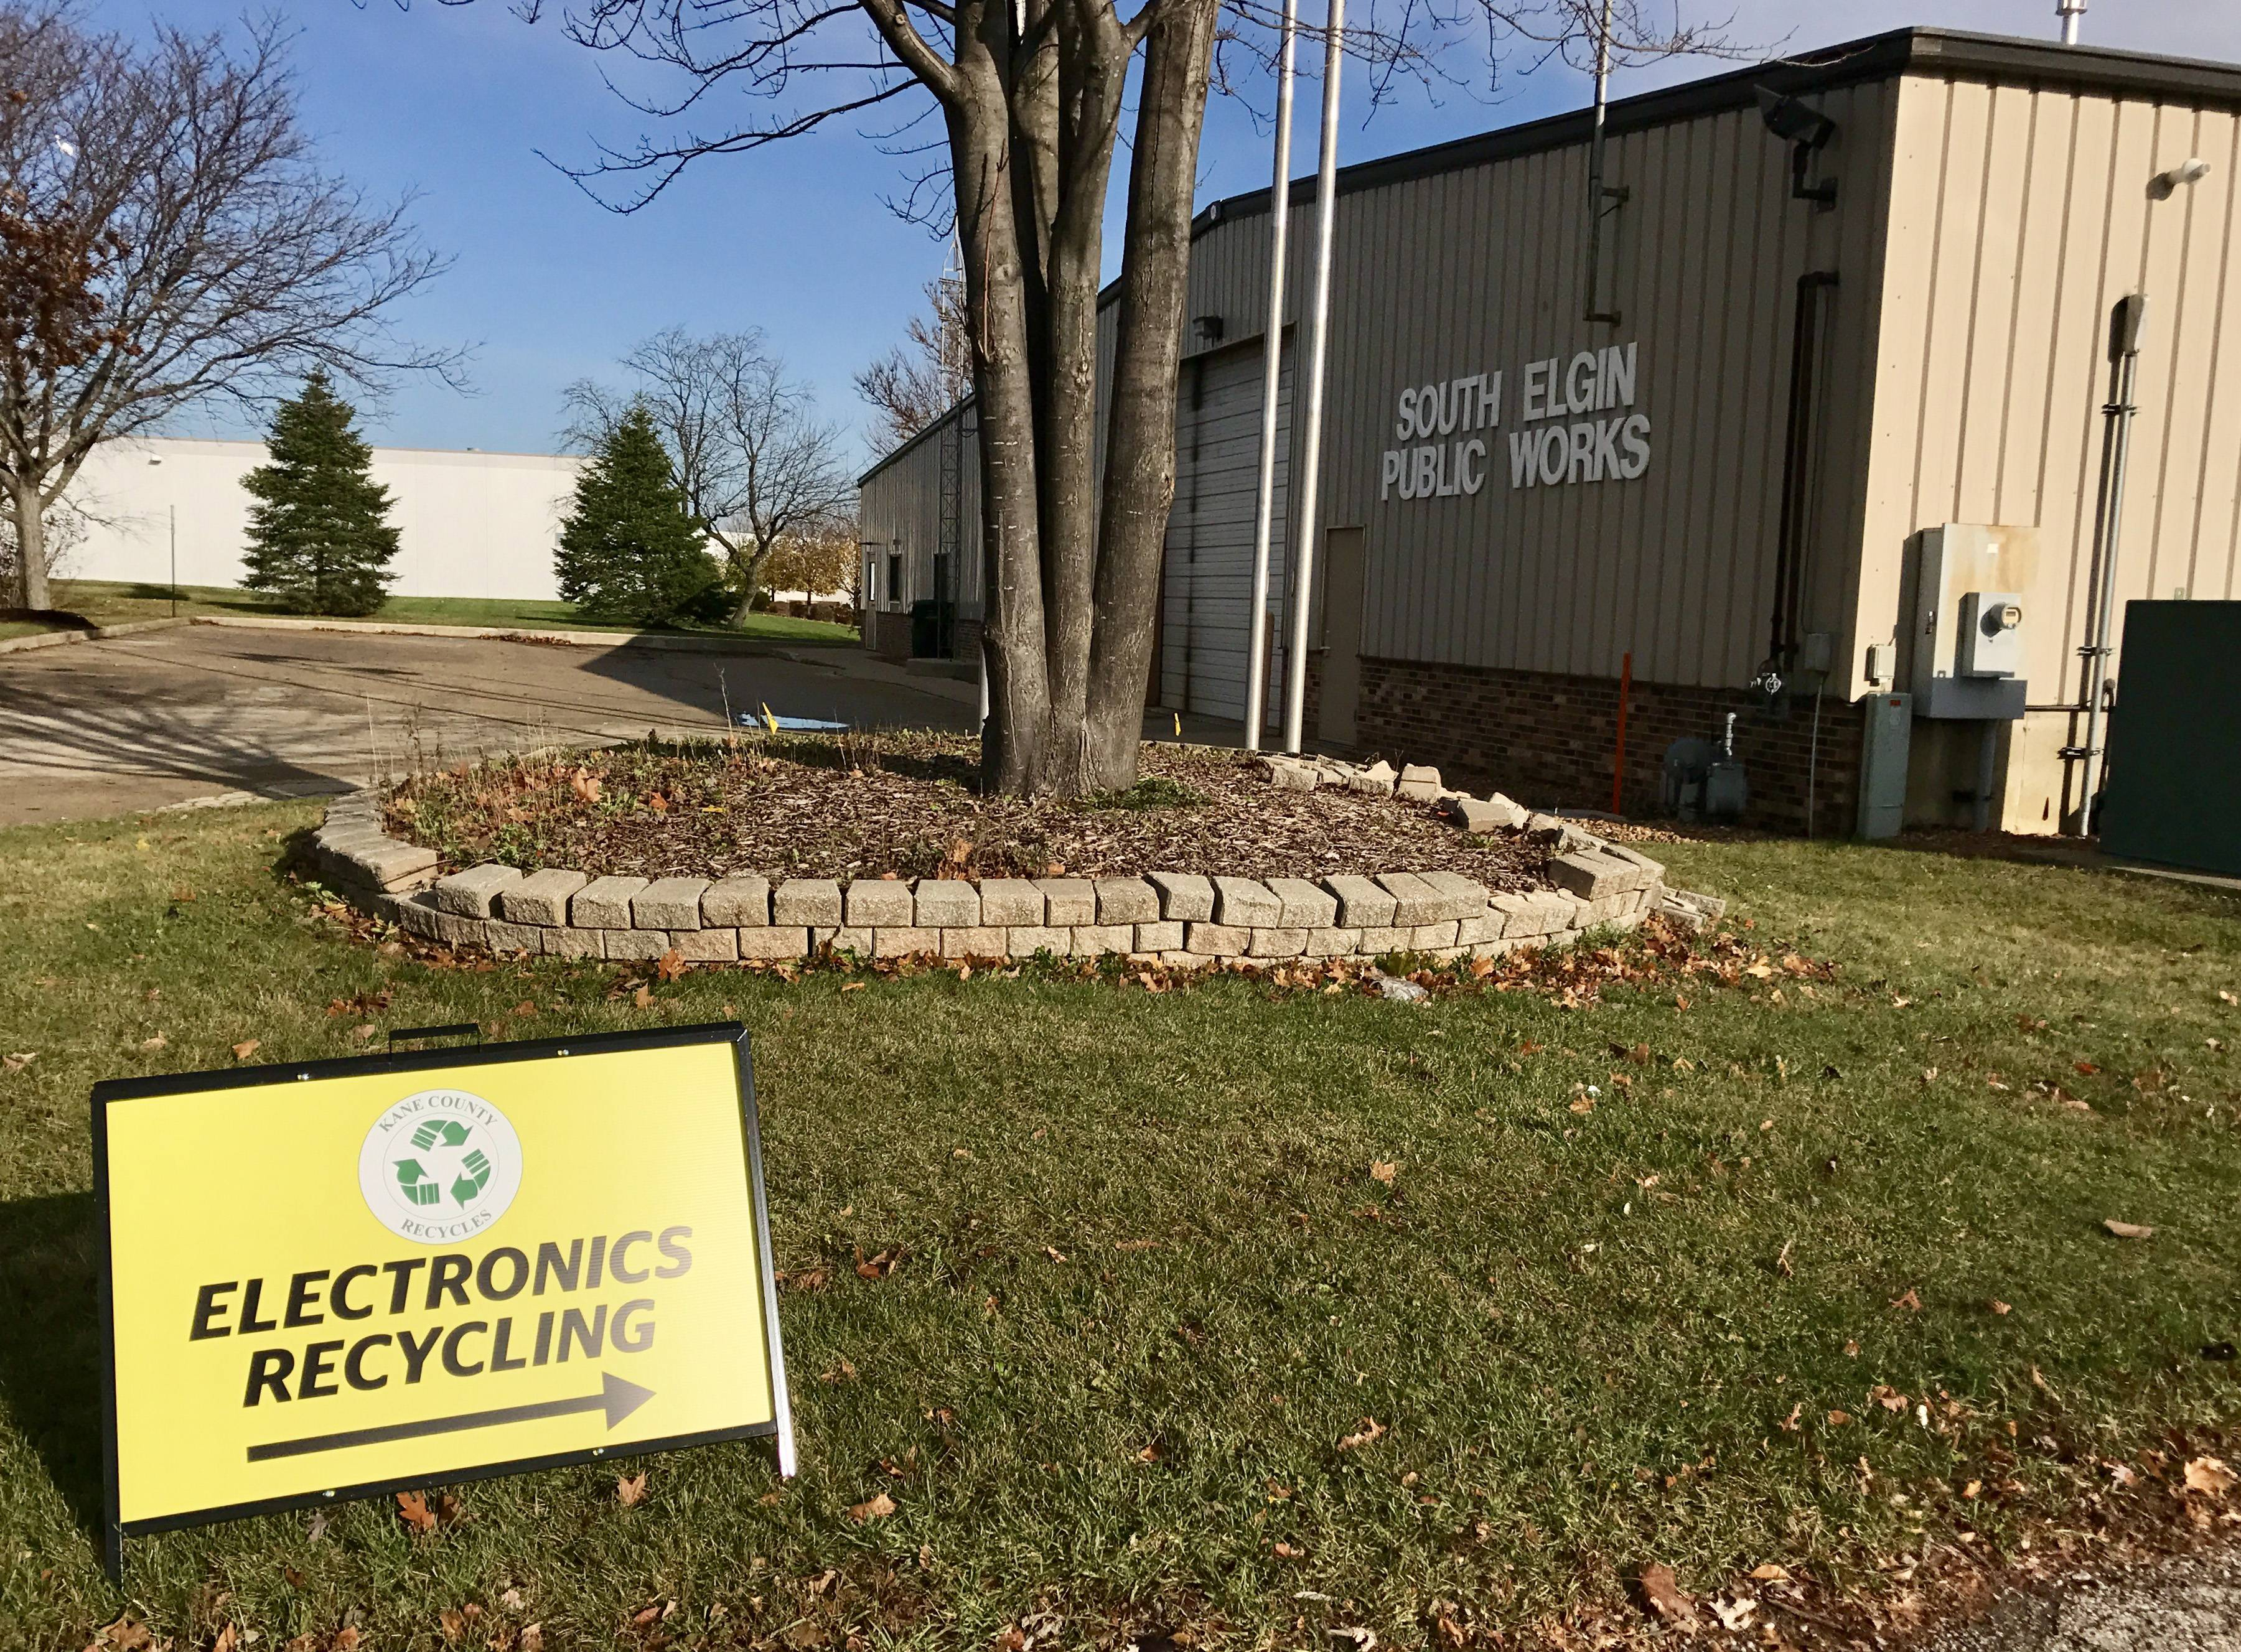 Signs point residents to South Elgin's daily drop-off site for electronics recycling. The collection site has seen low traffic in recent months, prompting Kane County to increase outreach efforts for its recently relaunched electronics recycling program.